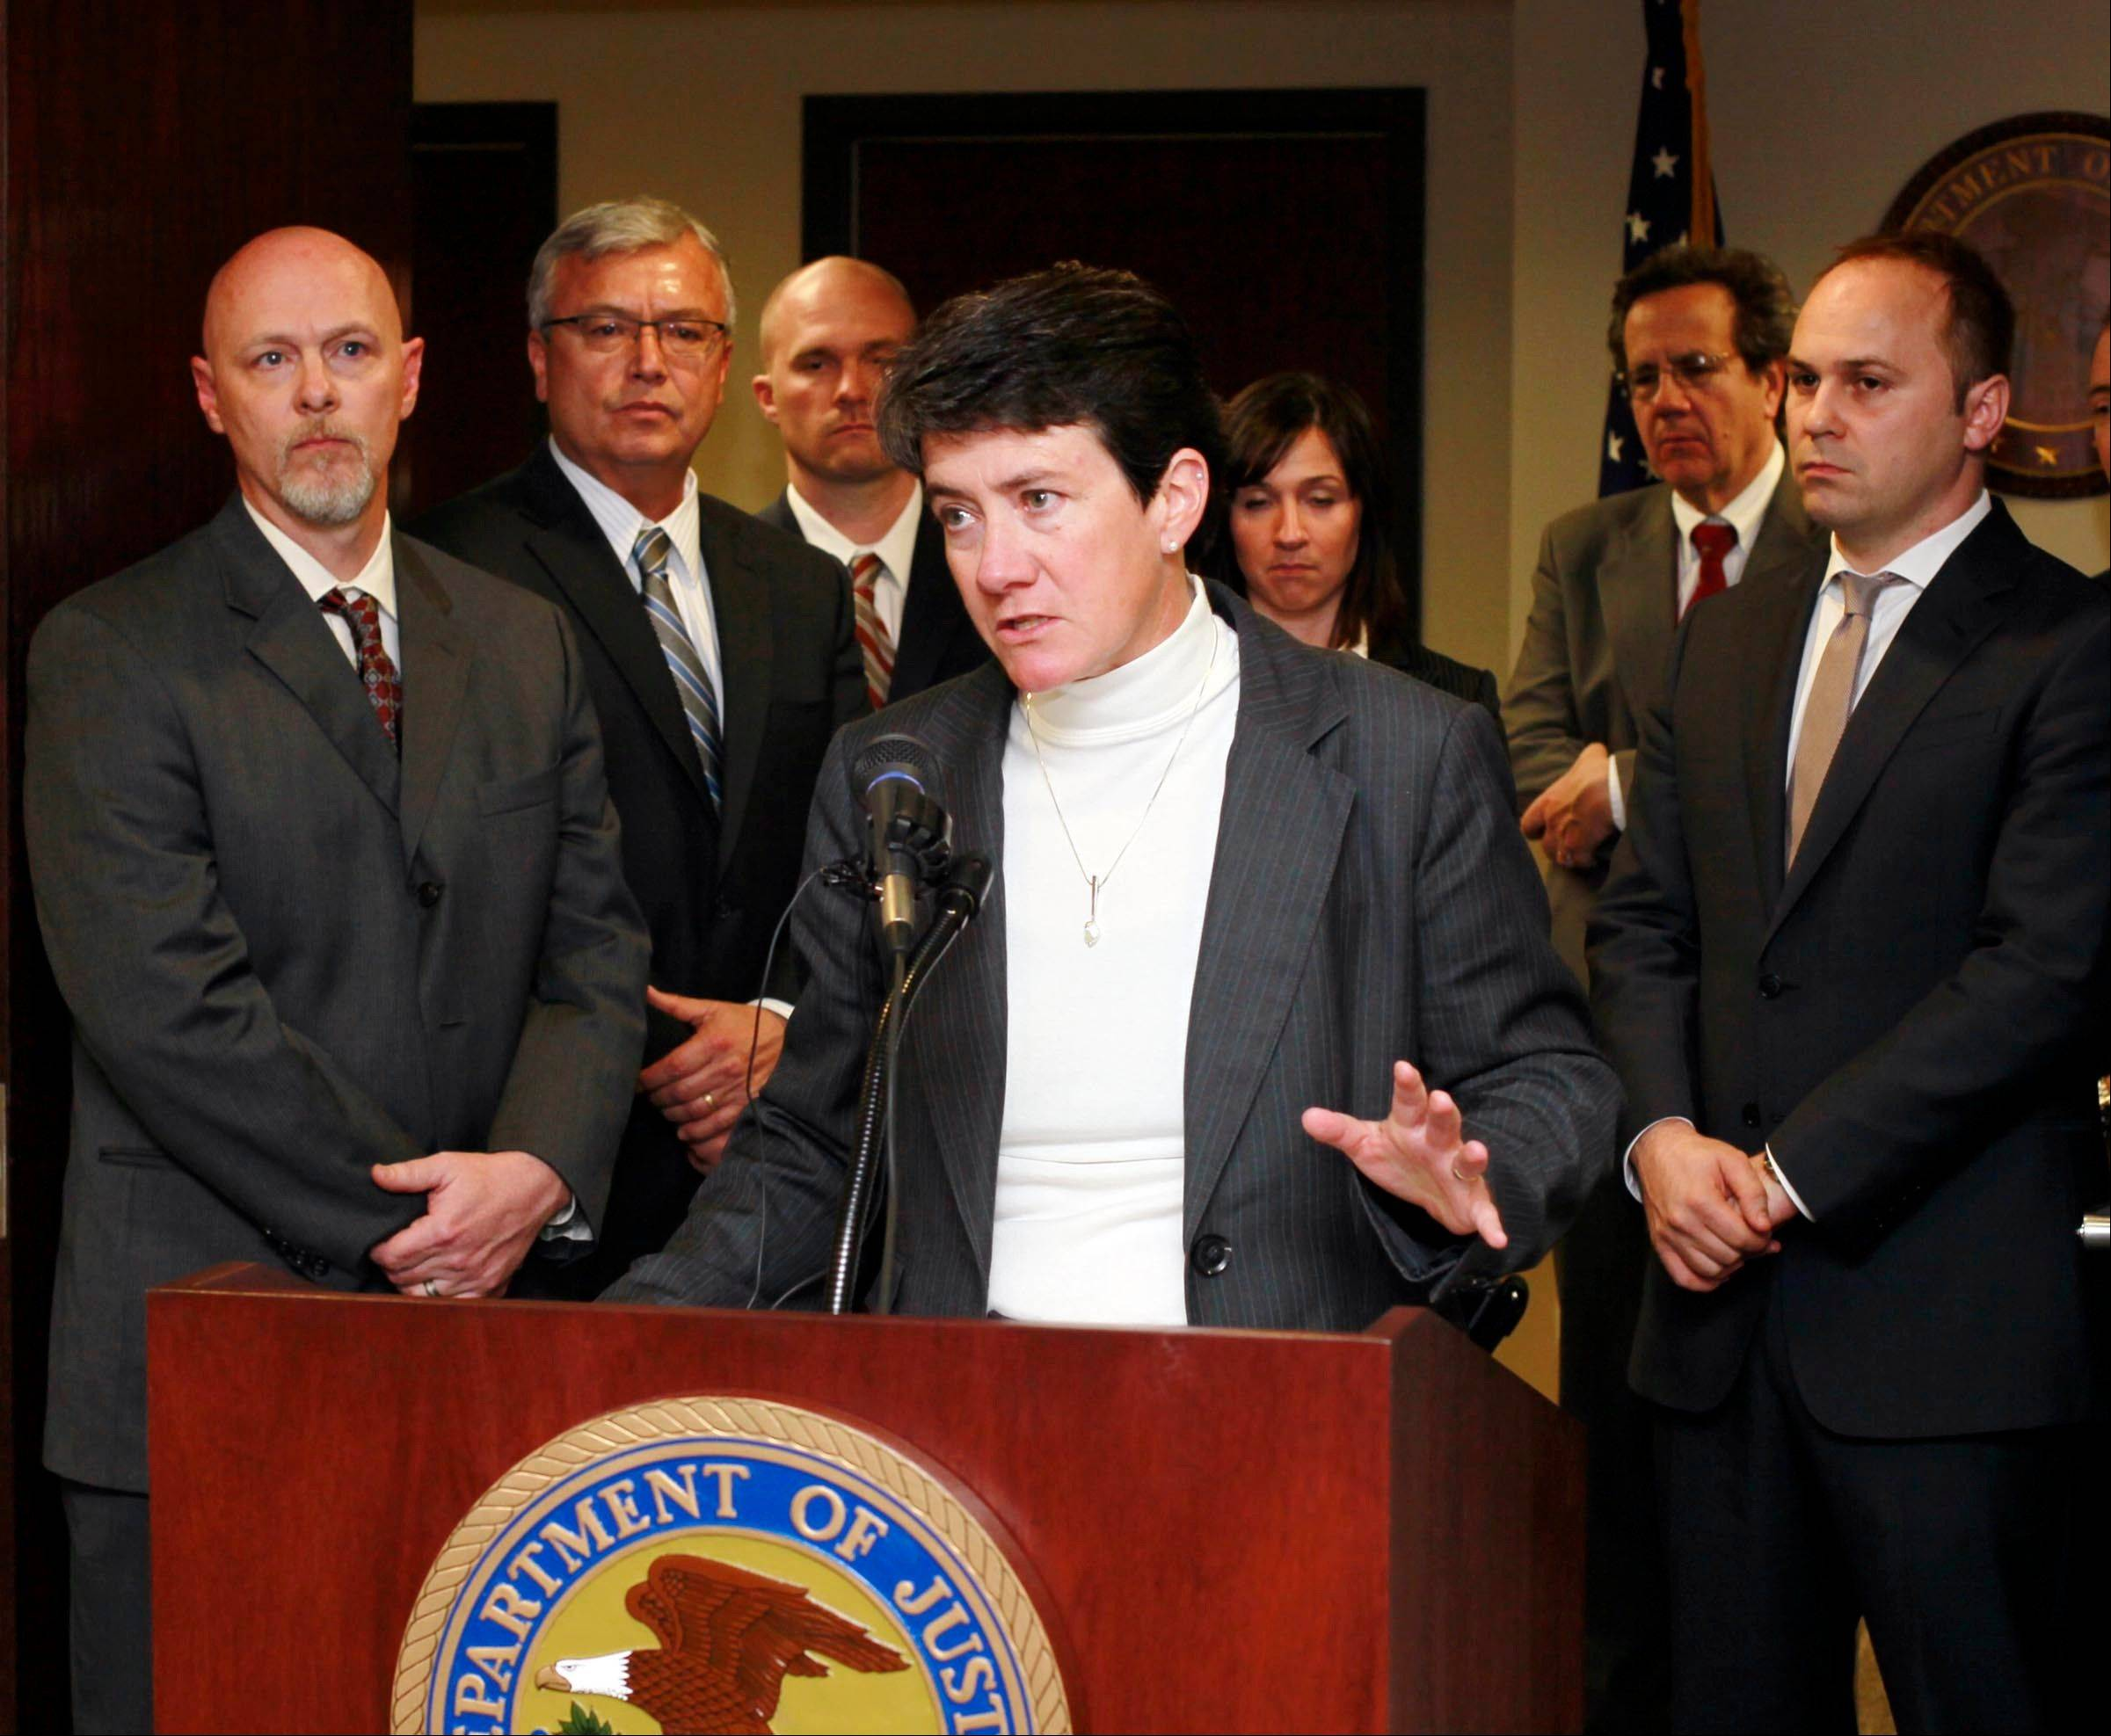 Associated PressU.S. Attorney Wendy J. Olsen announces the indictment by a federal grand jury of four DBSI principal businessmen for conspiracy to commit securities fraud among other charges in a news conference Wednesday in Boise, Idaho.